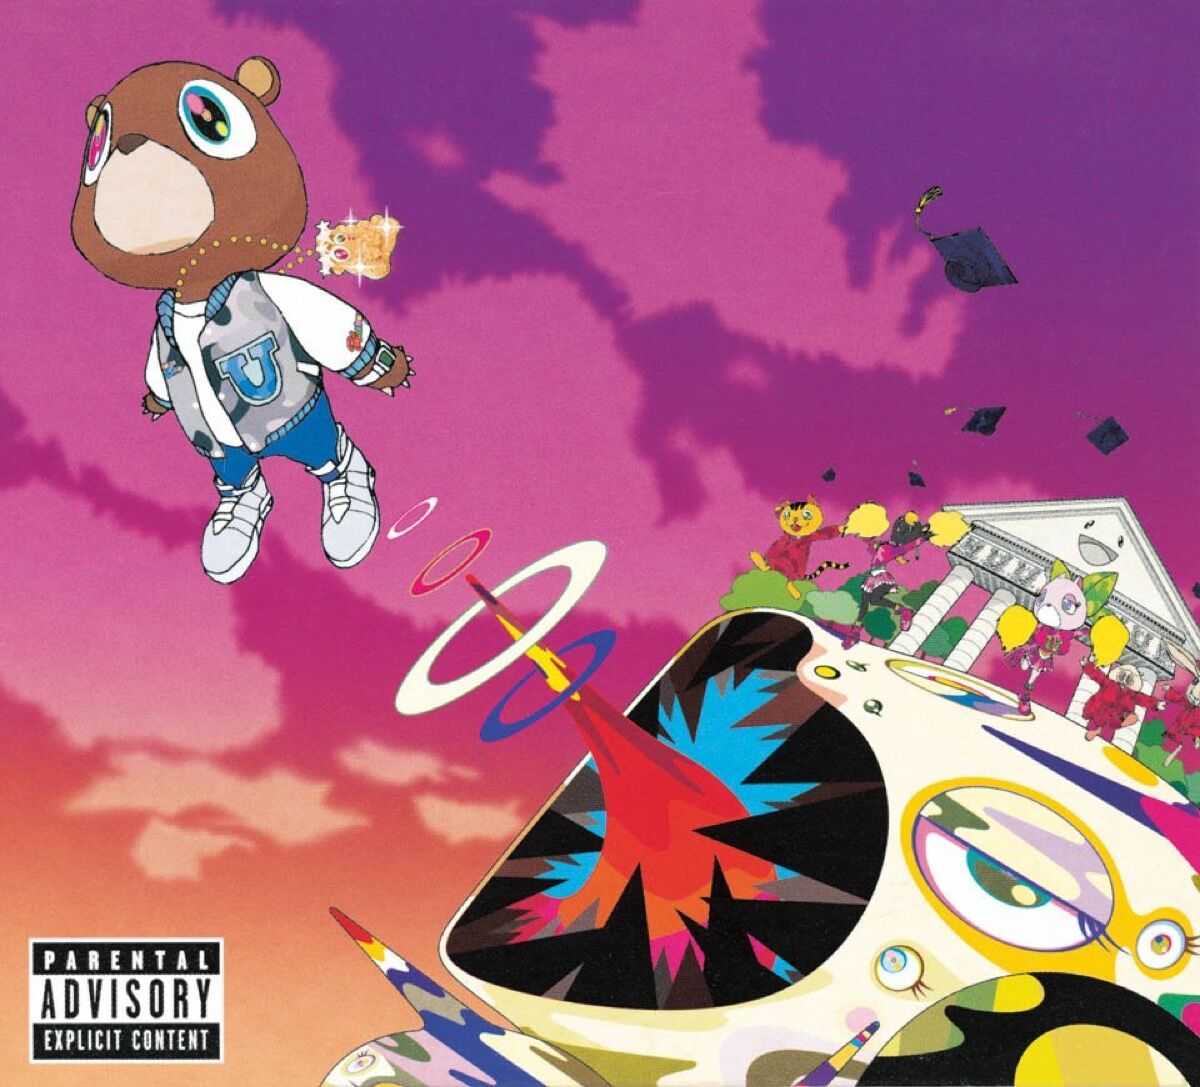 Takashi Murakami's cover for Graduation by Kanye West, 2007. Courtesy of TASCHEN.